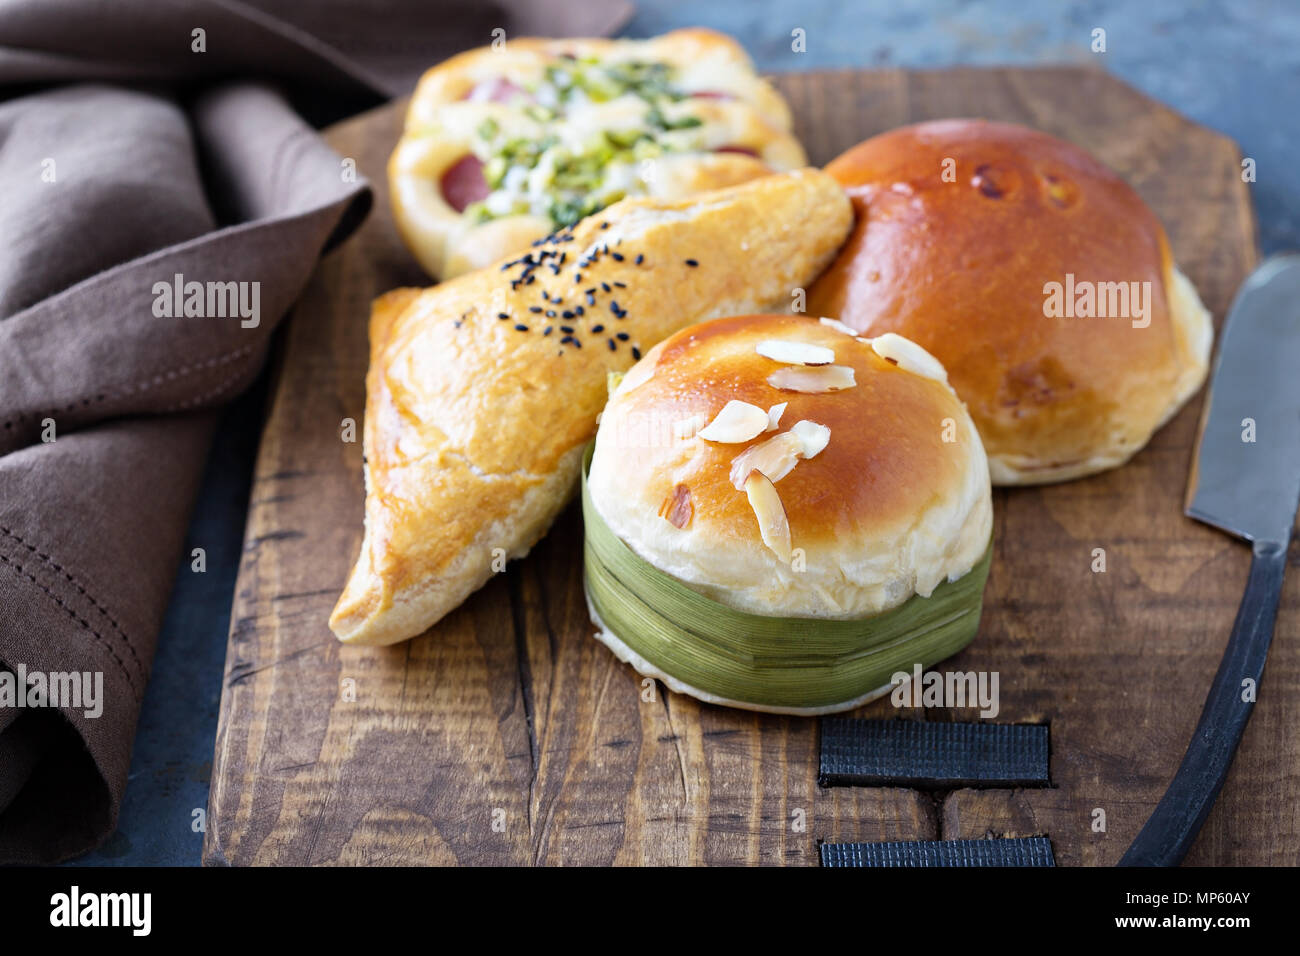 Savory chinese pastries with red bean filling - Stock Image